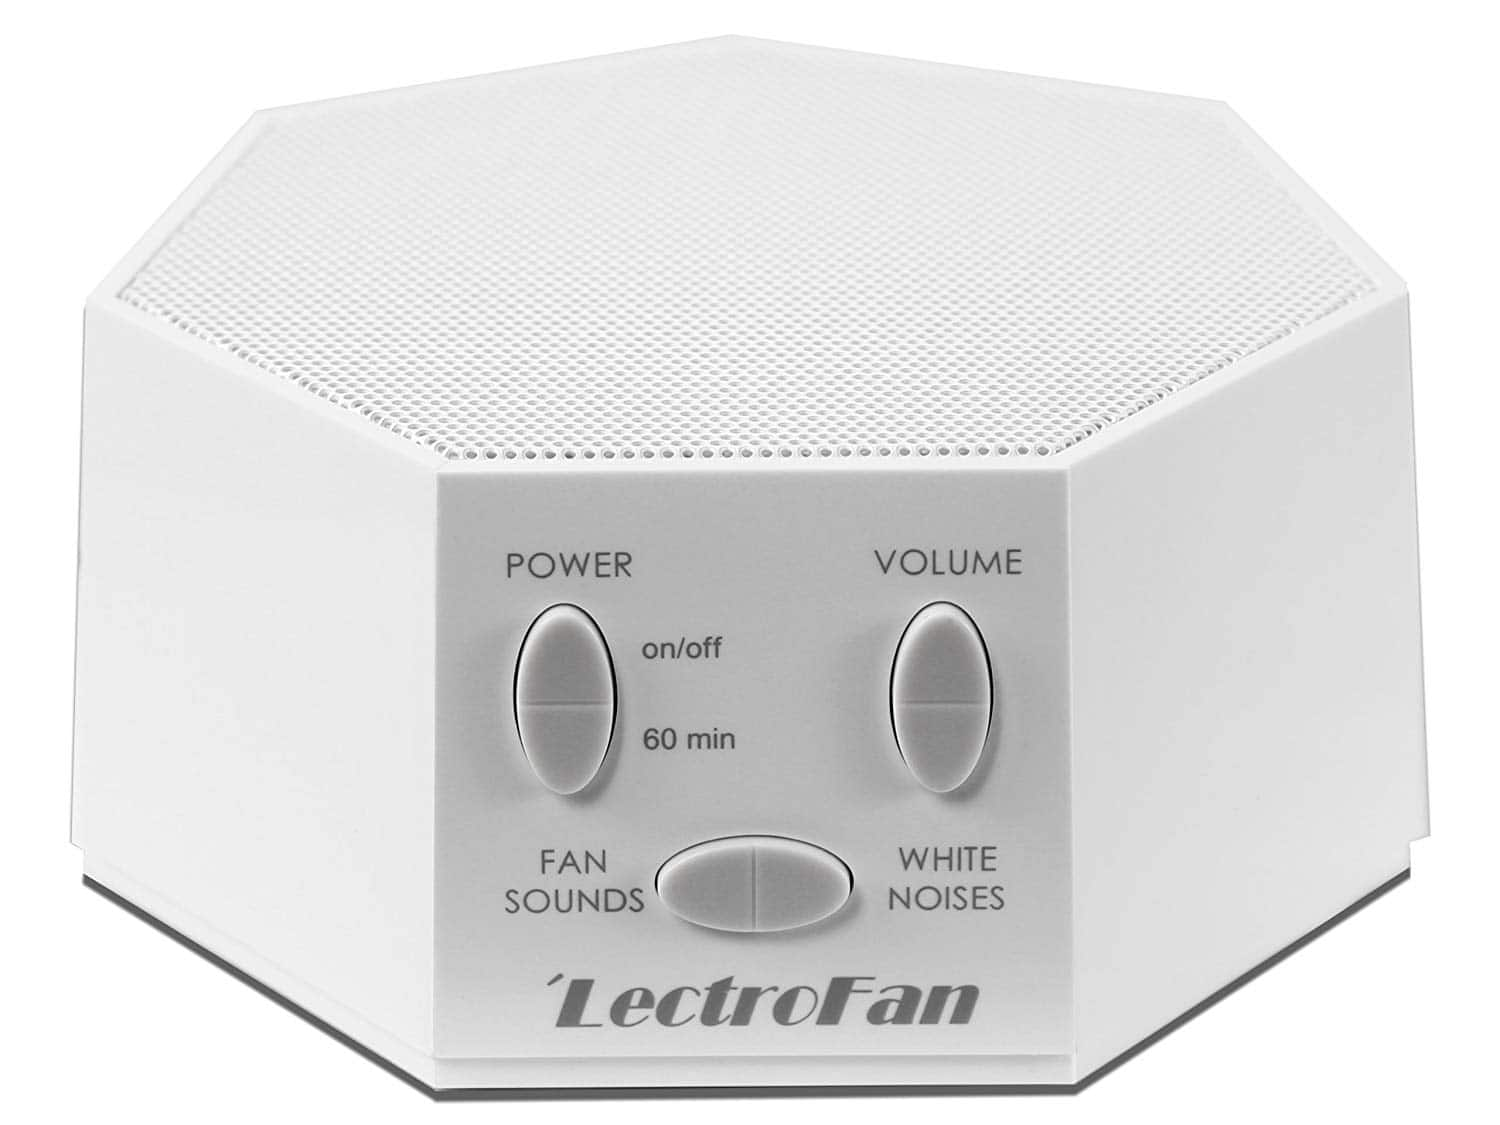 Lectrofan High Fidelity White Noise Sound Machine With 20